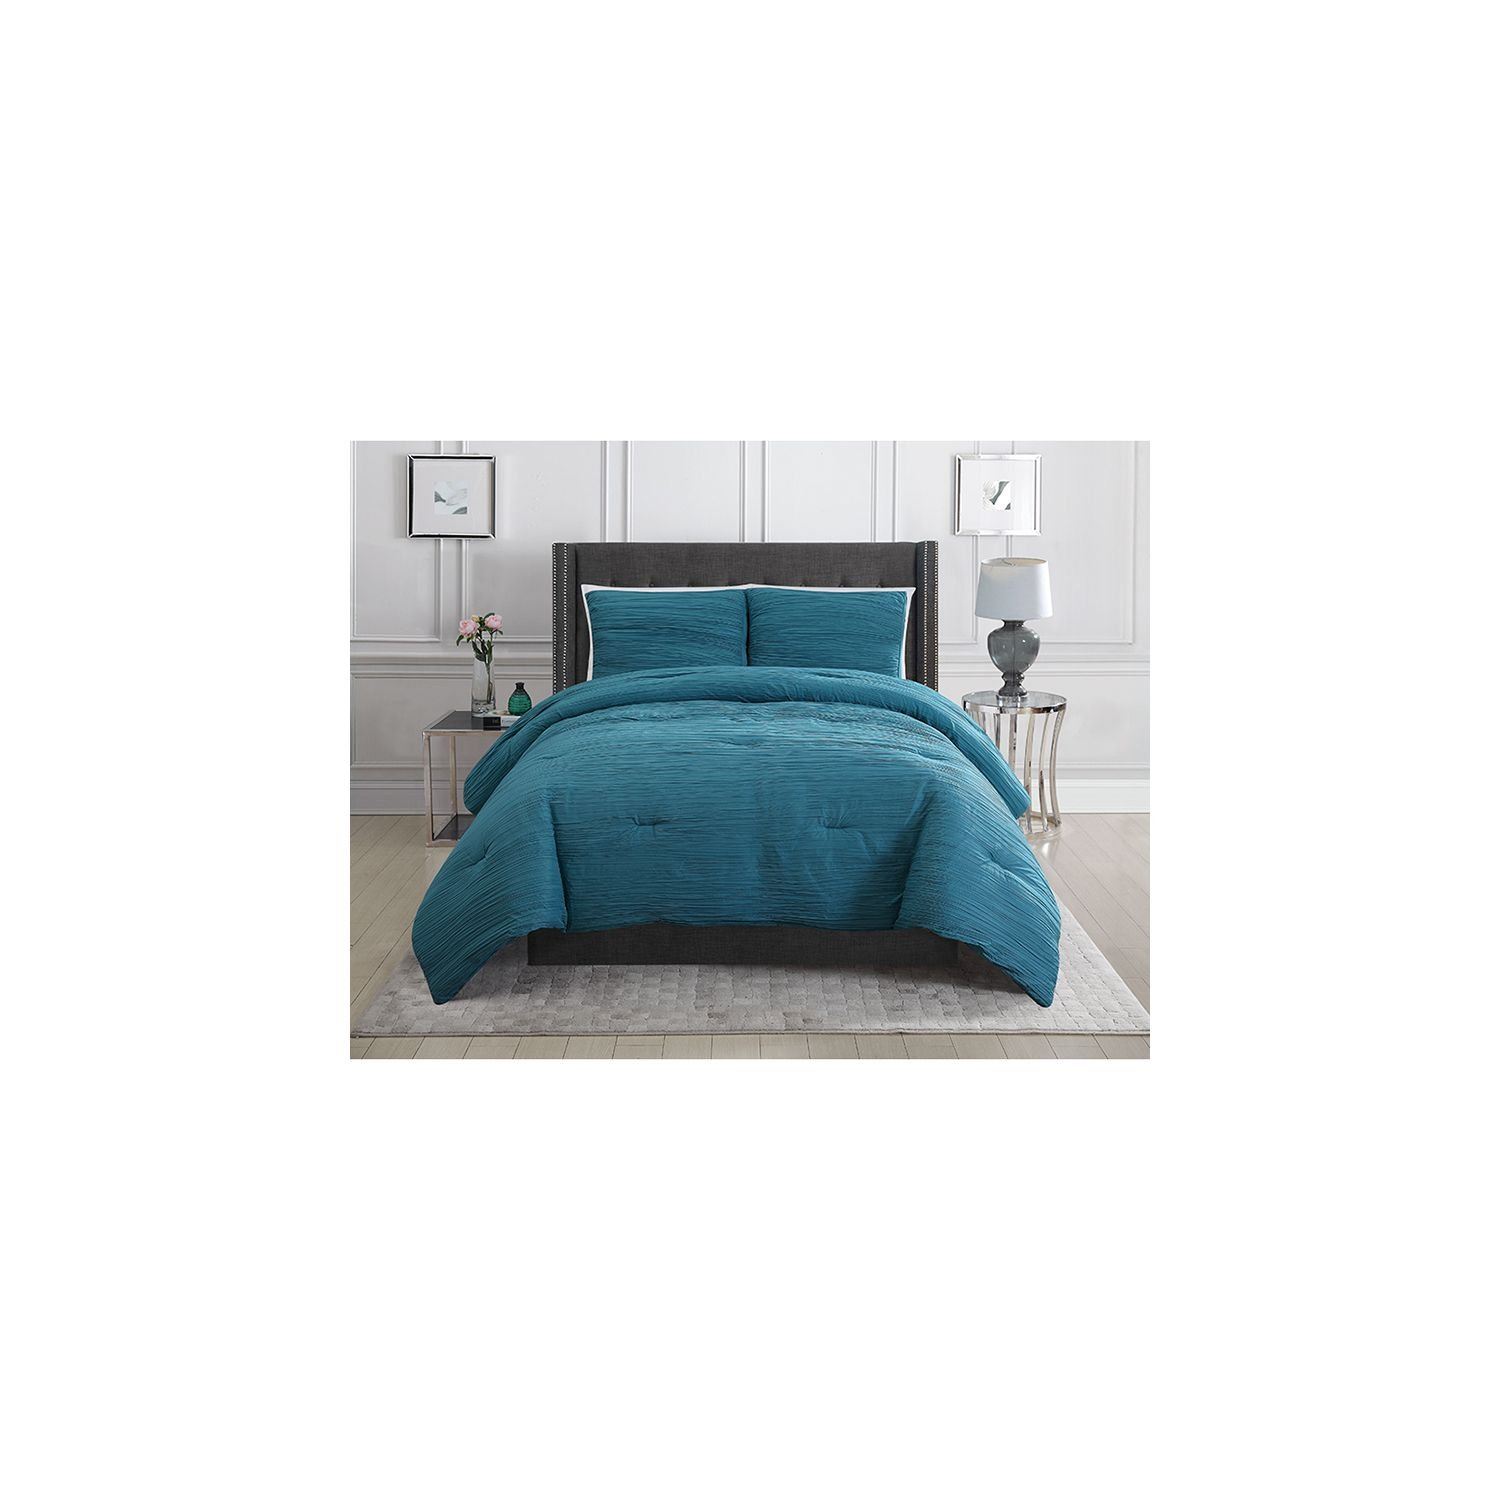 Christian Siriano Reversible Crinkle Comforter Set, Queen, Teal